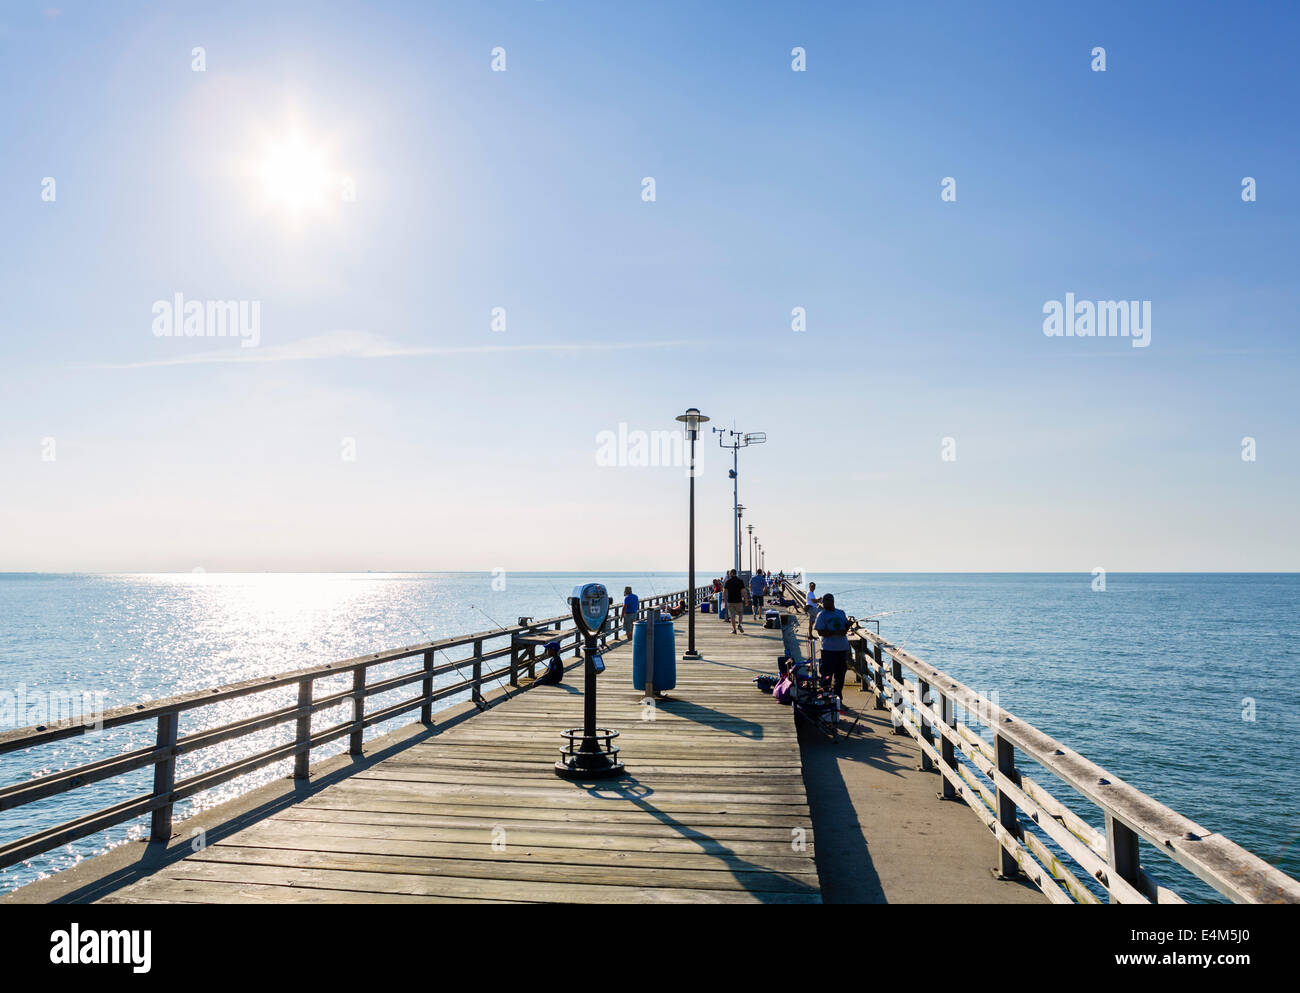 The fishing pier on Sea Gull Island, a part of the 23 mile long Chesapeake Bay Bridge-Tunnel, near Virginia Beach, - Stock Image